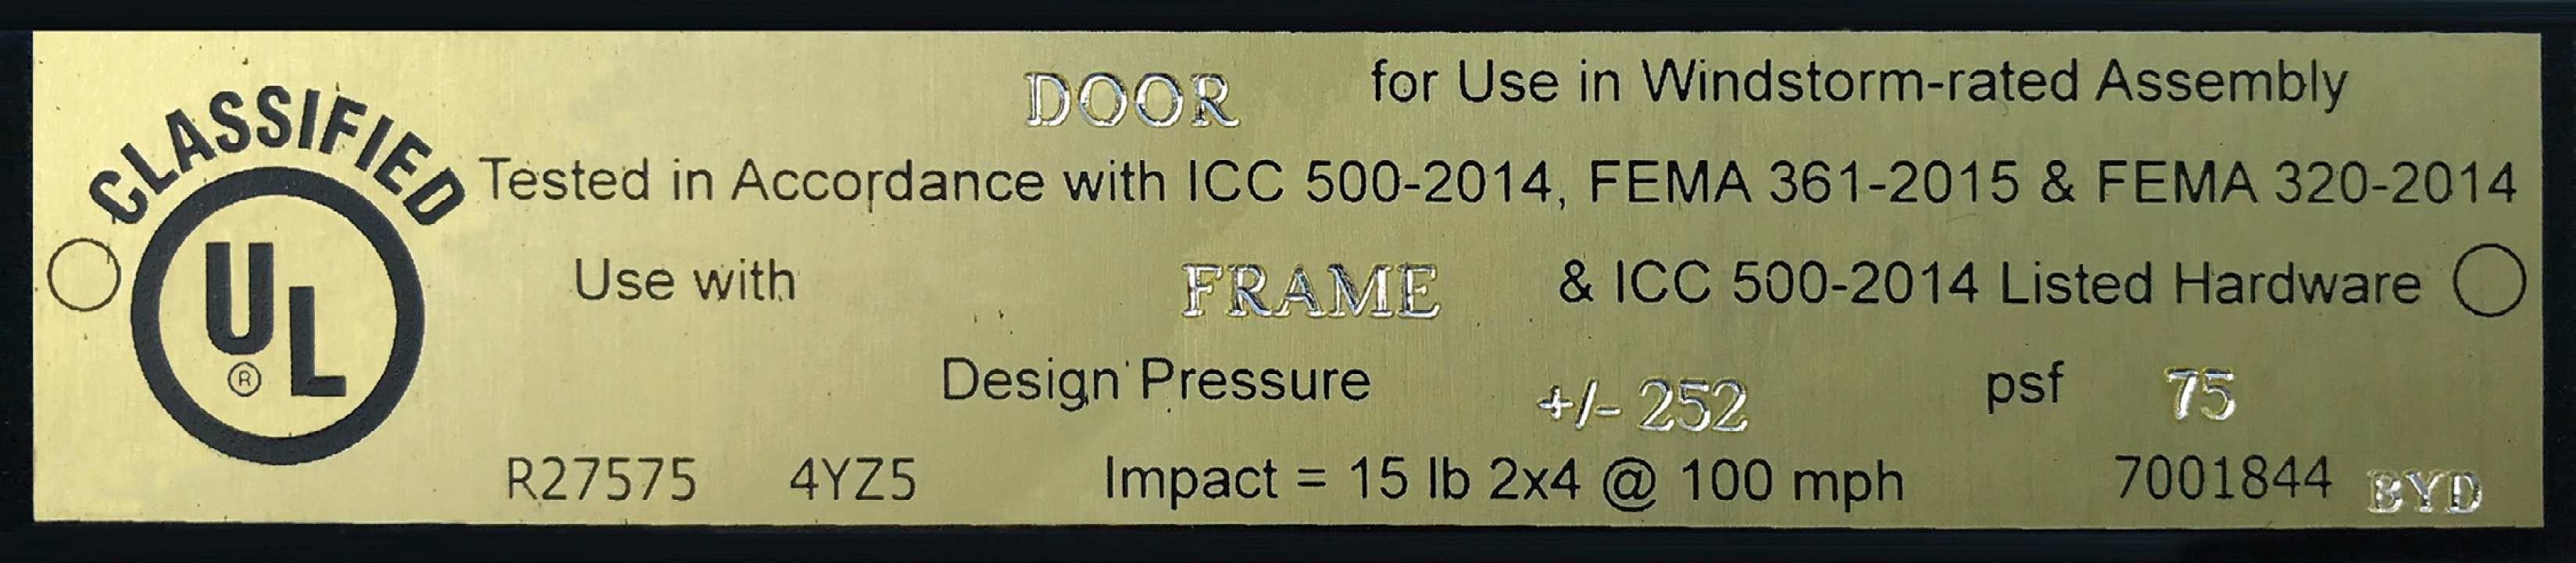 Underwriters Laboratory label for a safe room door.